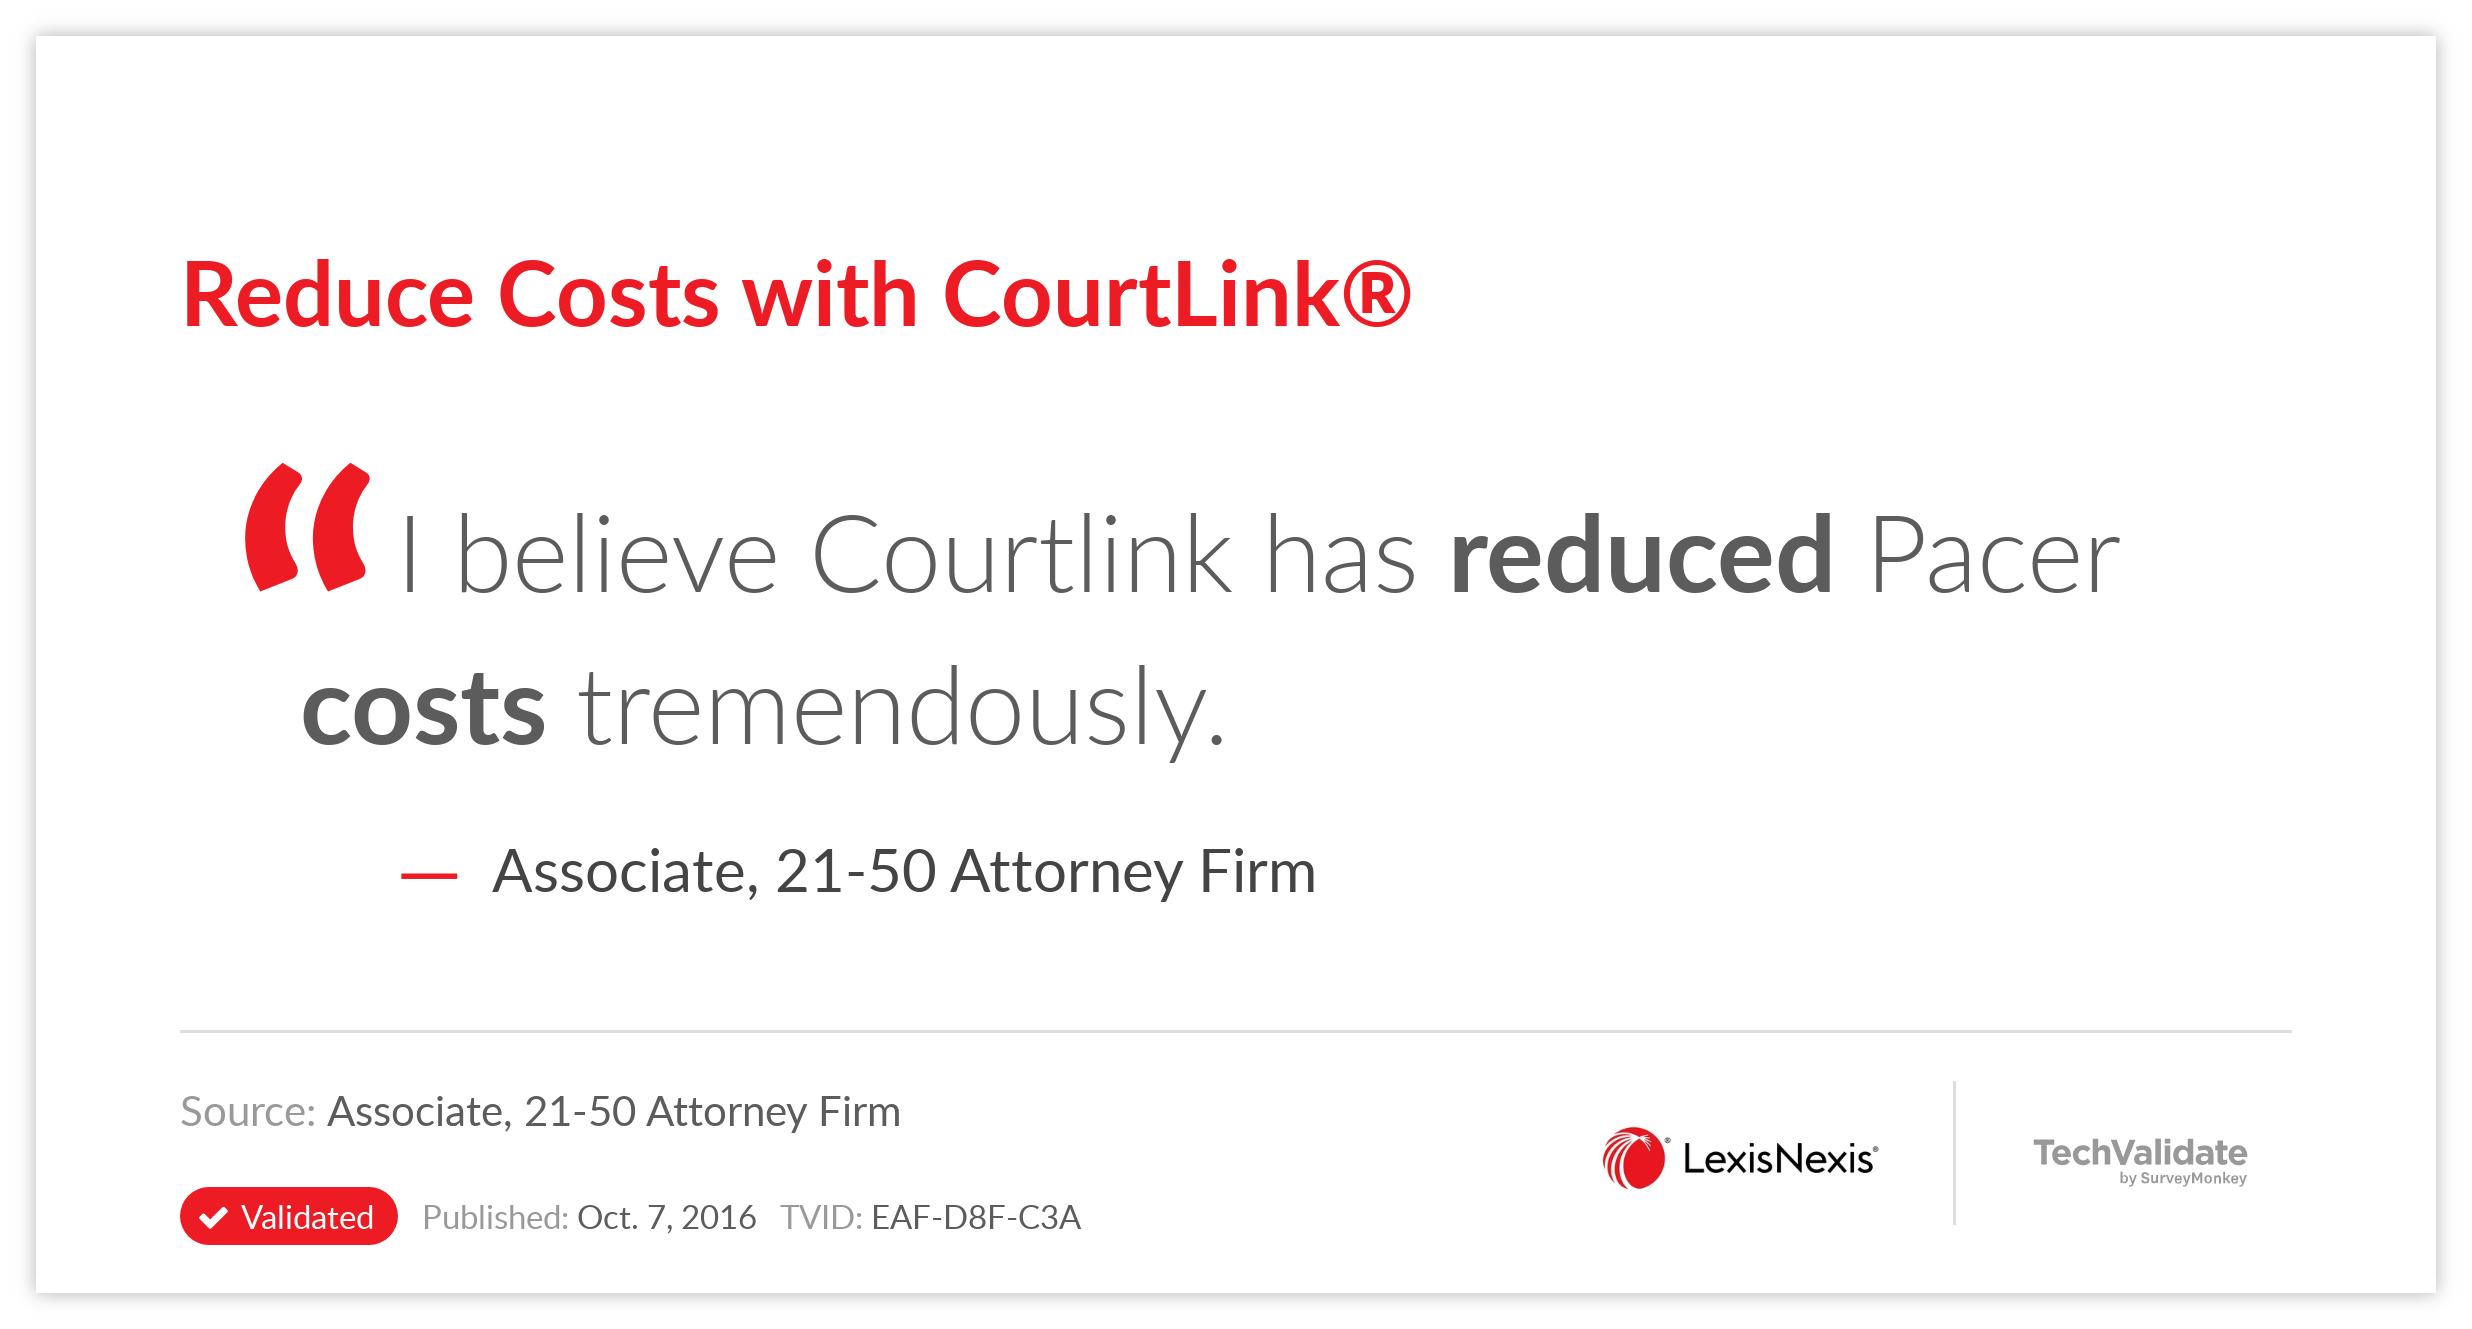 Reduce Costs with CourtLink(R)